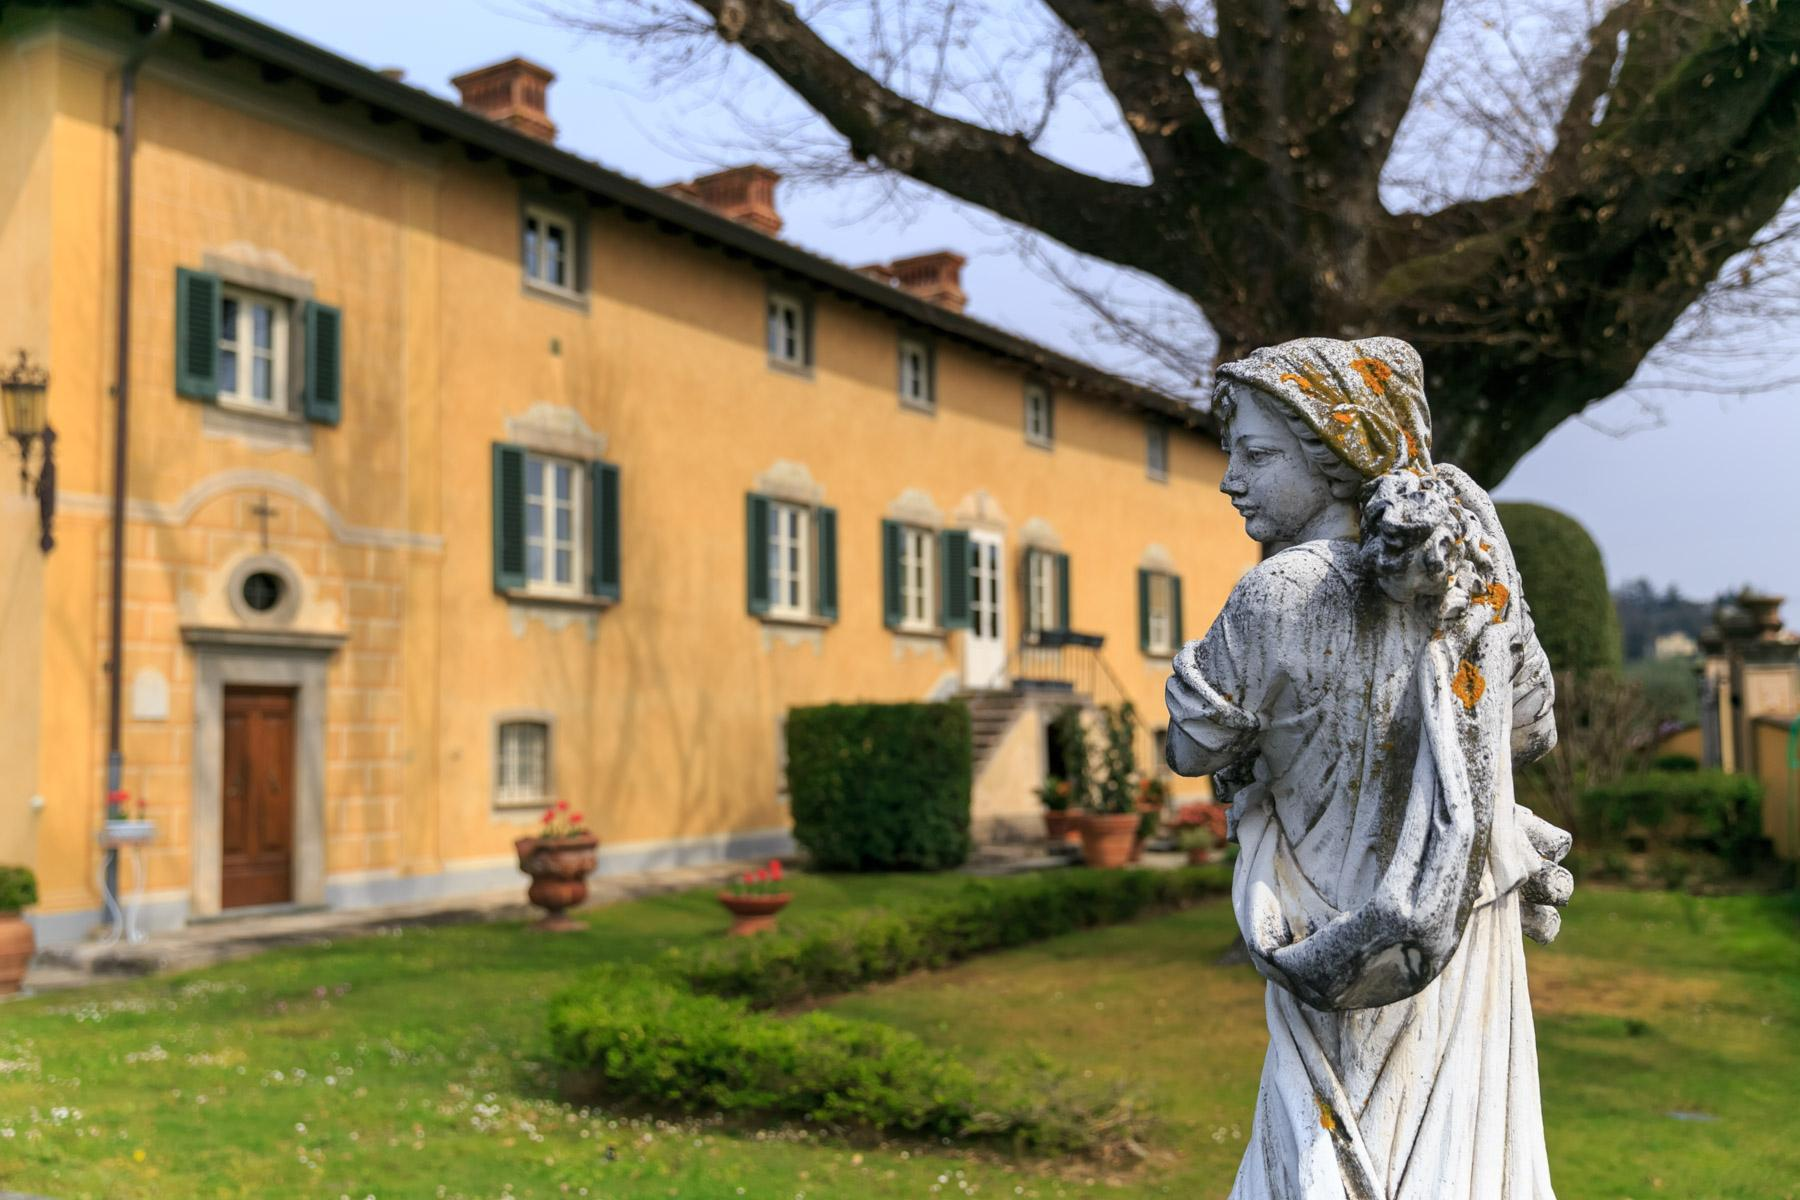 Majestic XVII century villa on the hills of Lucca - 2